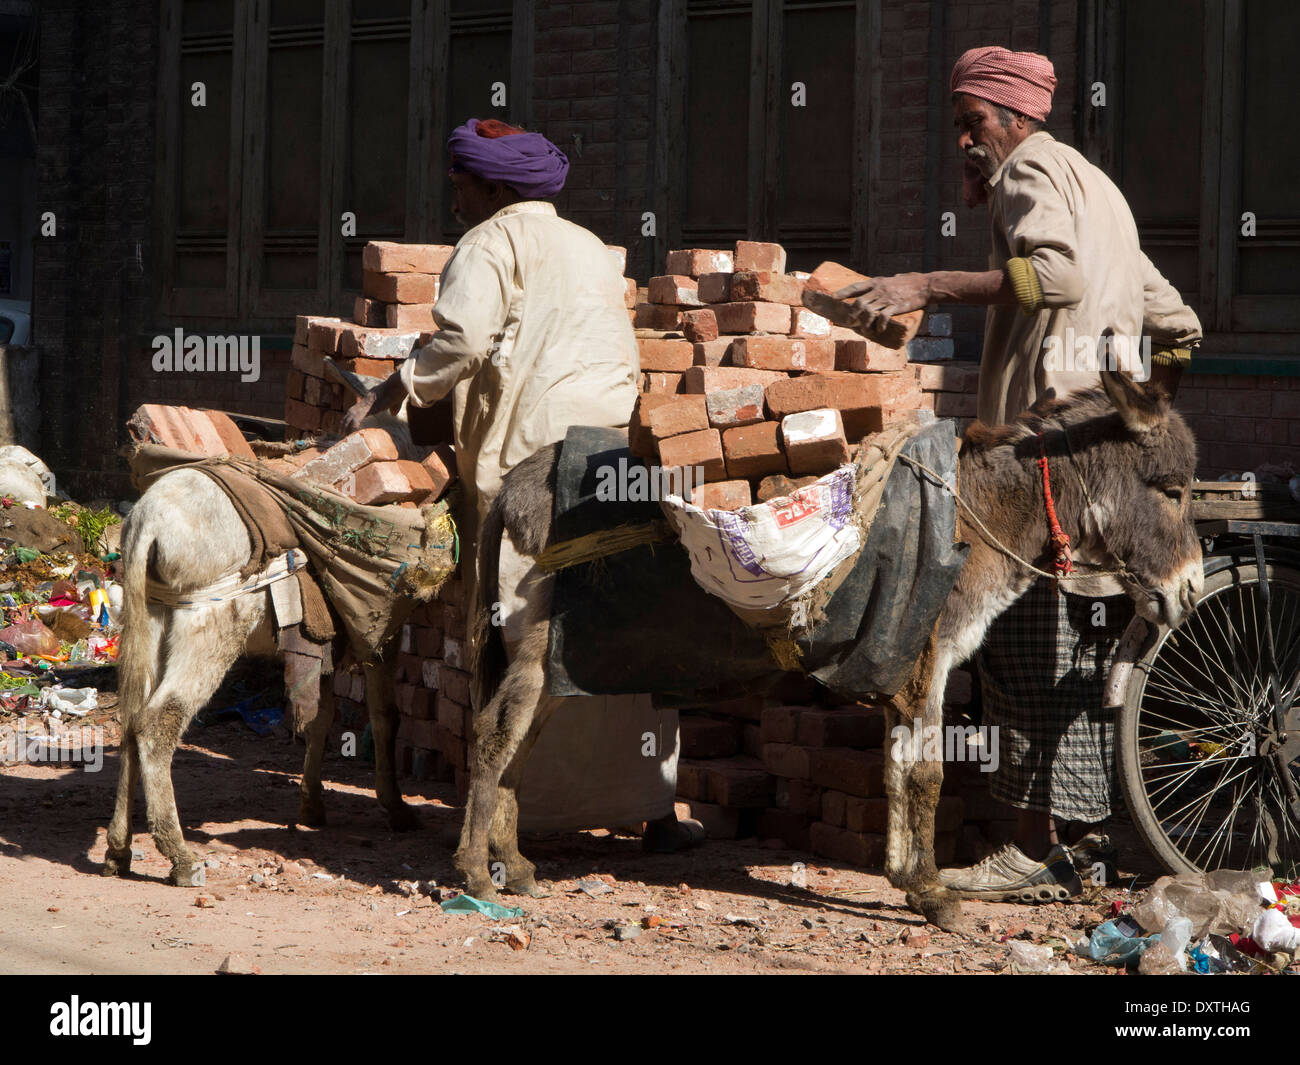 India, Punjab, Amritsar, animal cruelty, donkeys being overloaded with bricks in panniers - Stock Image